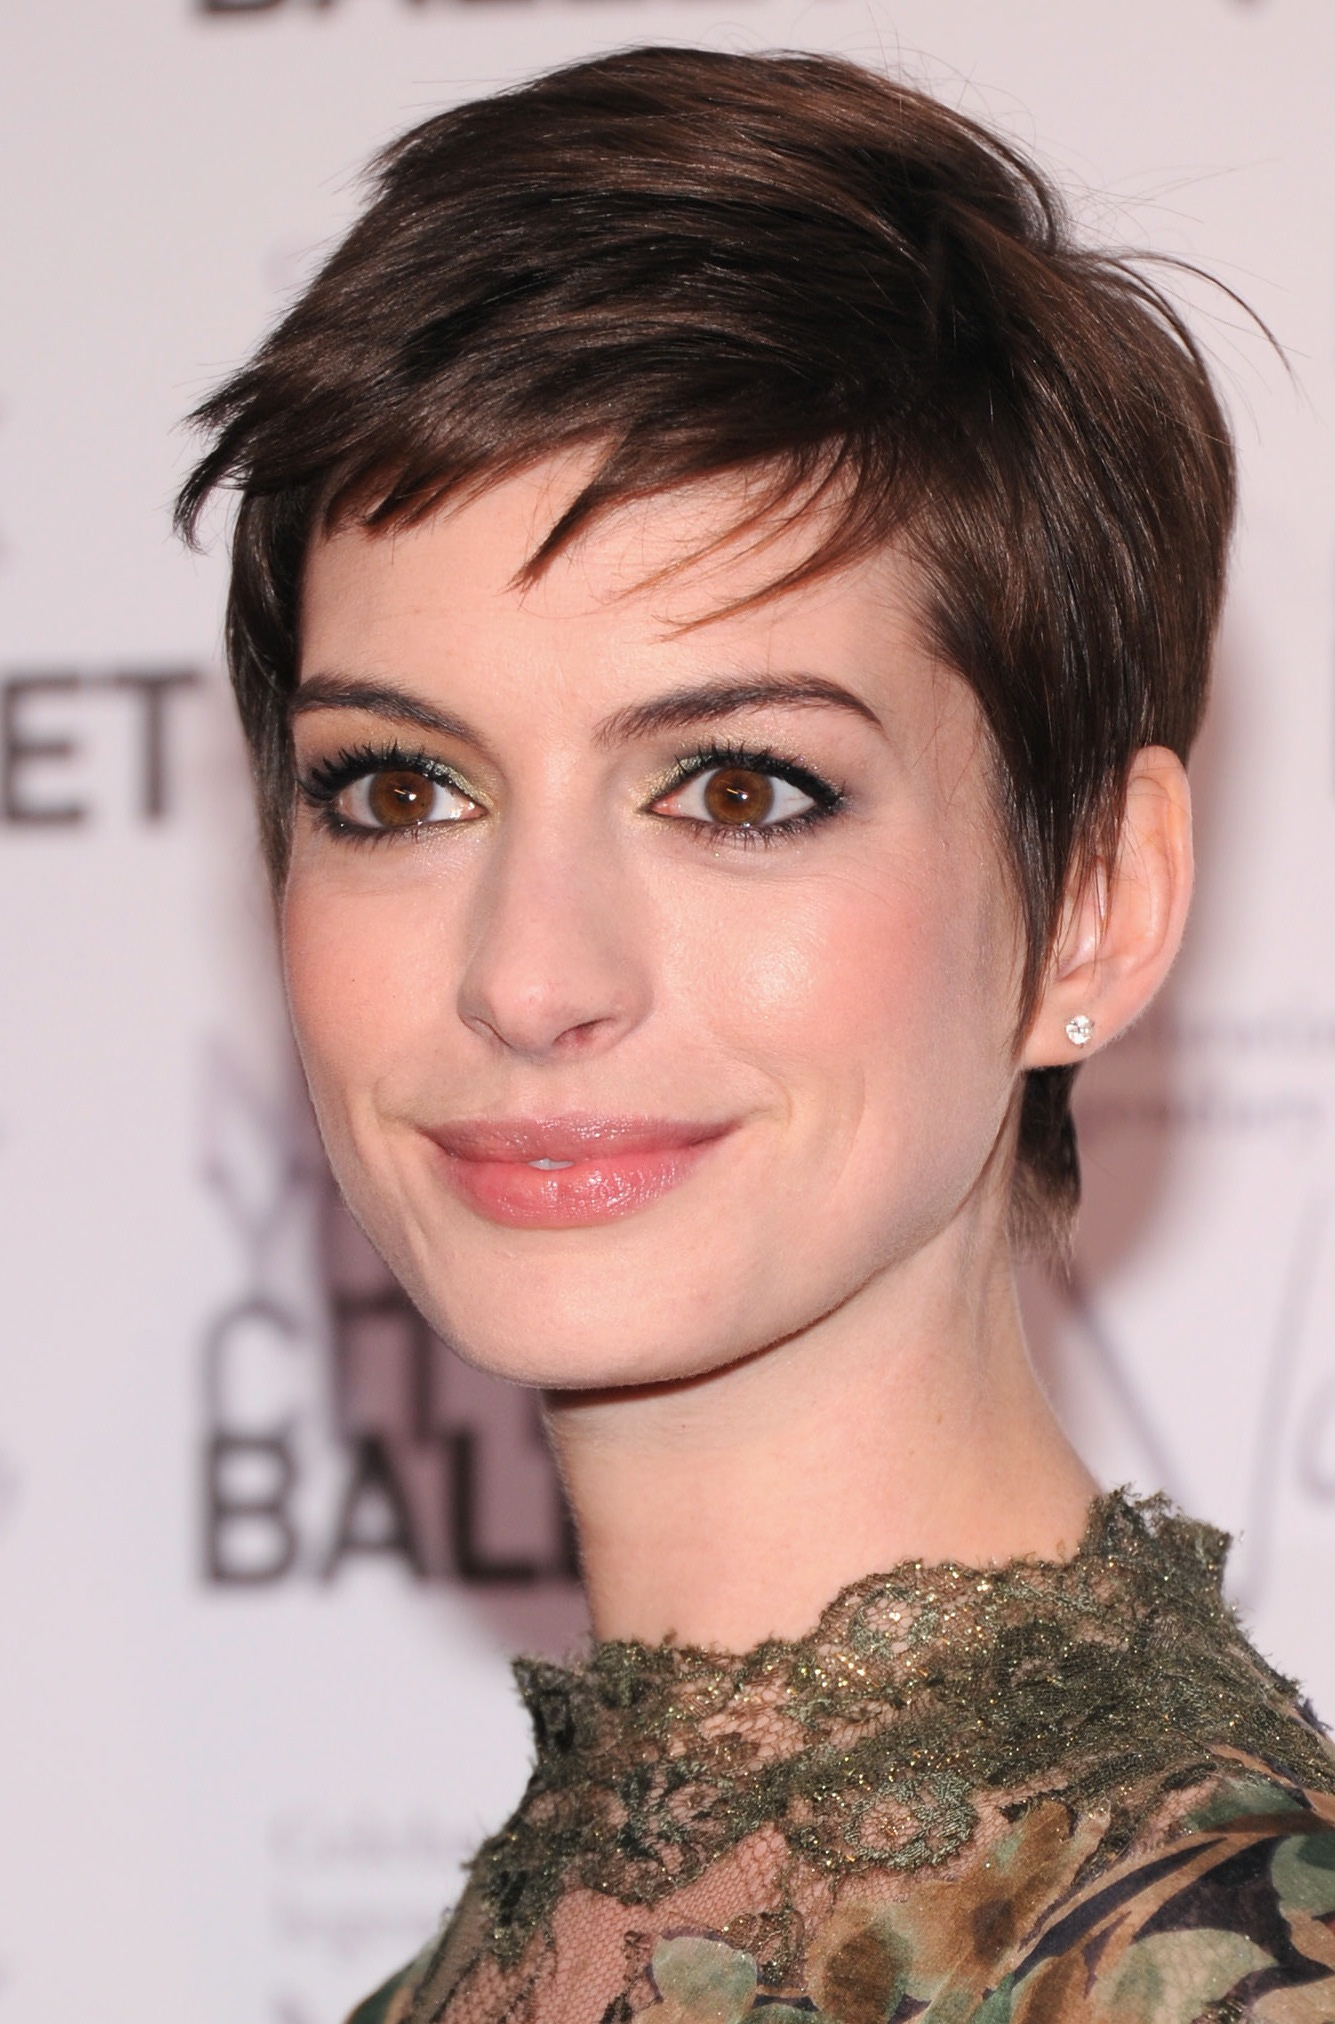 Short hairstyles for women advice for choosing HairStyles